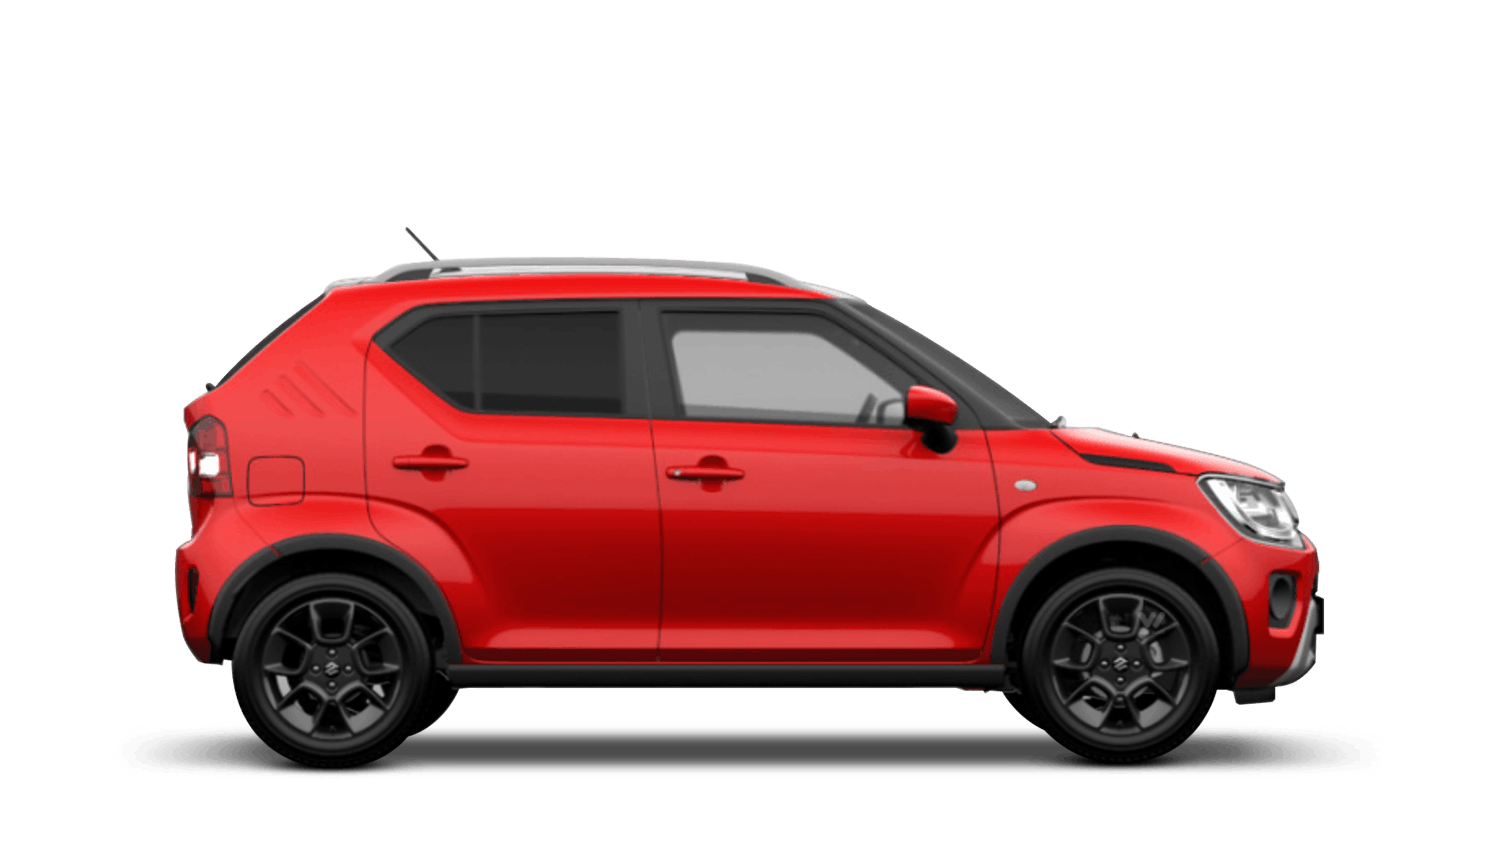 Fervent Red with Black Roof (Dual Tone) New Suzuki Ignis